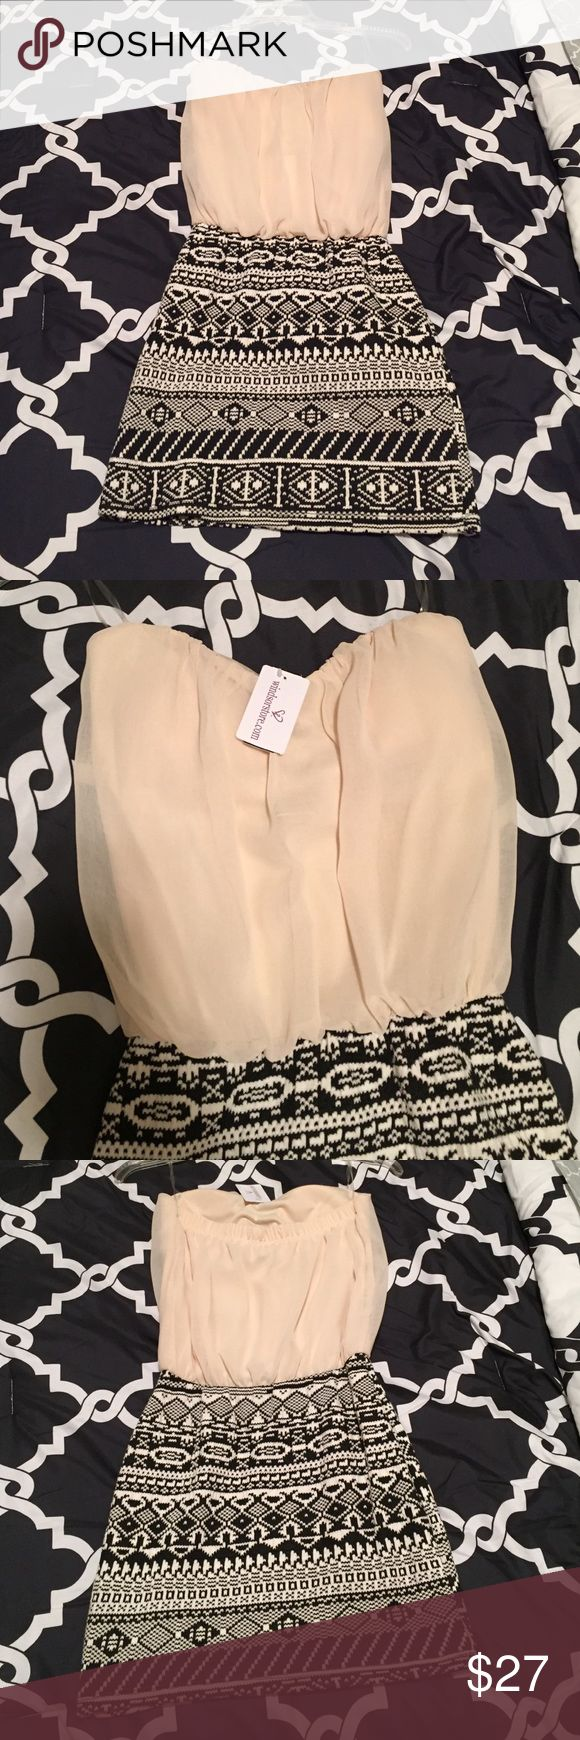 New Windsor store mini strapless dress size S With the tag on it taupe/black strapless mini dress size small. Super cute for any occasion. Purchased from Windsor store. WINDSOR Dresses Mini